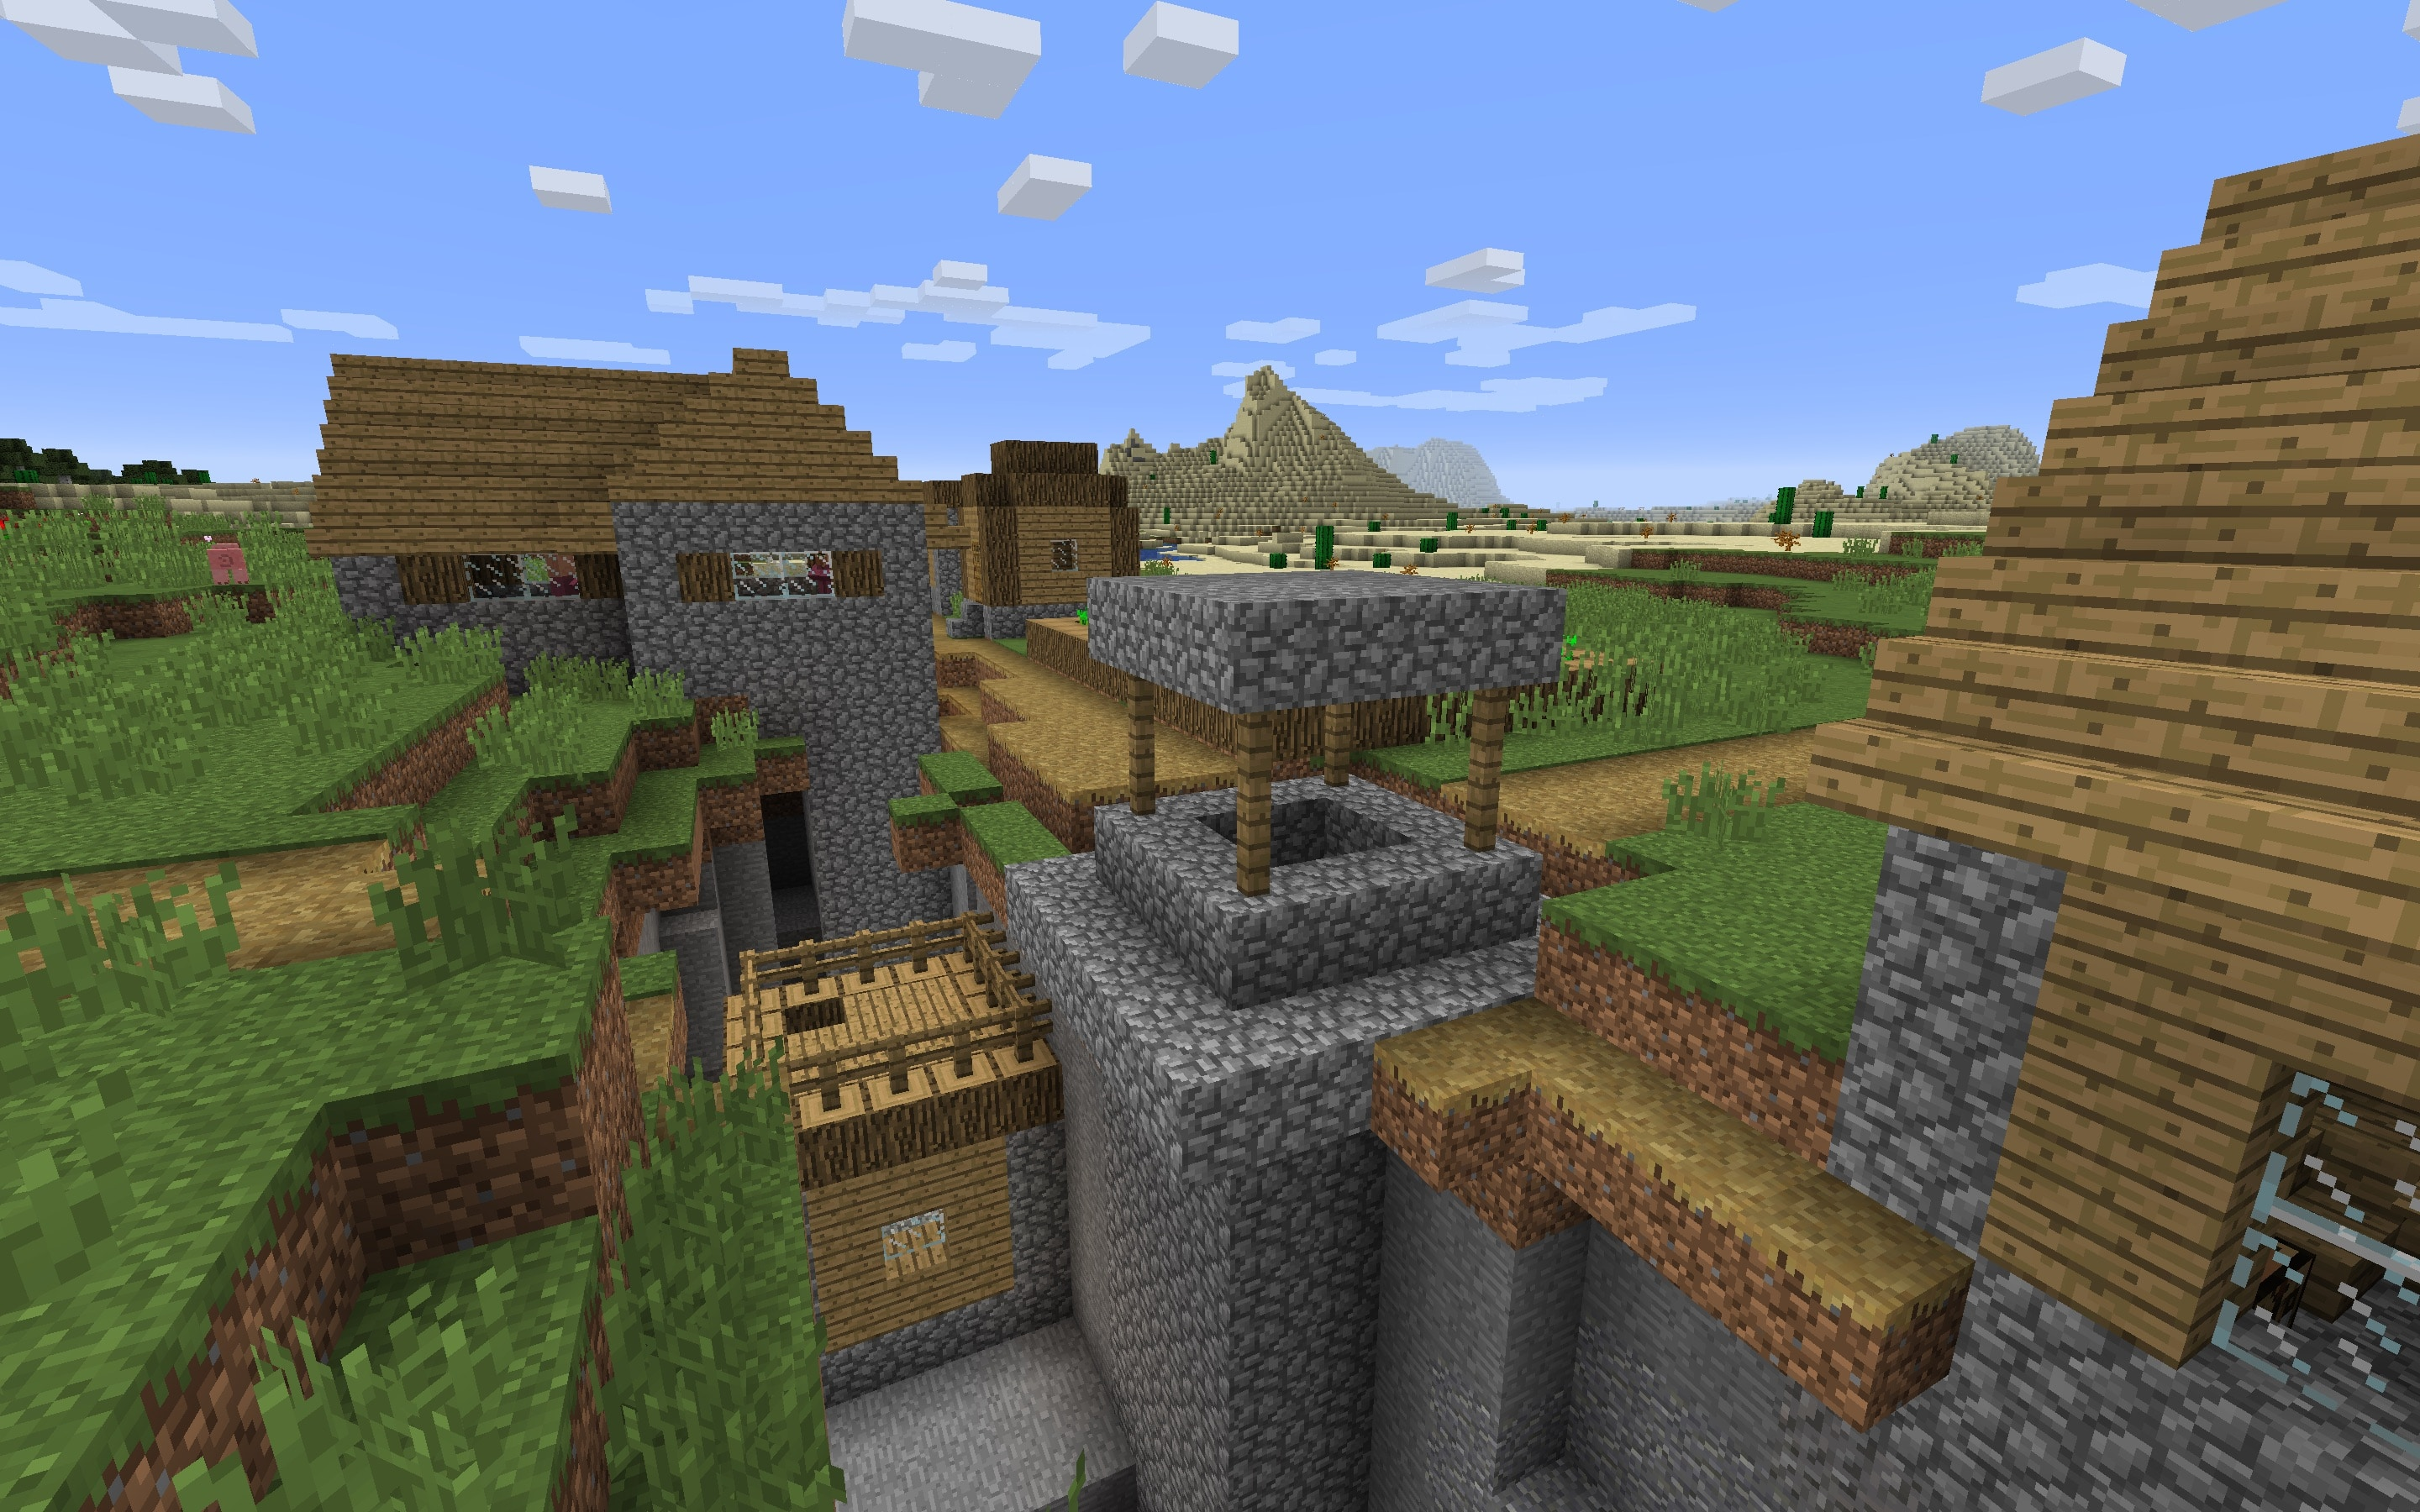 Village in Ravine Minecraft Seed